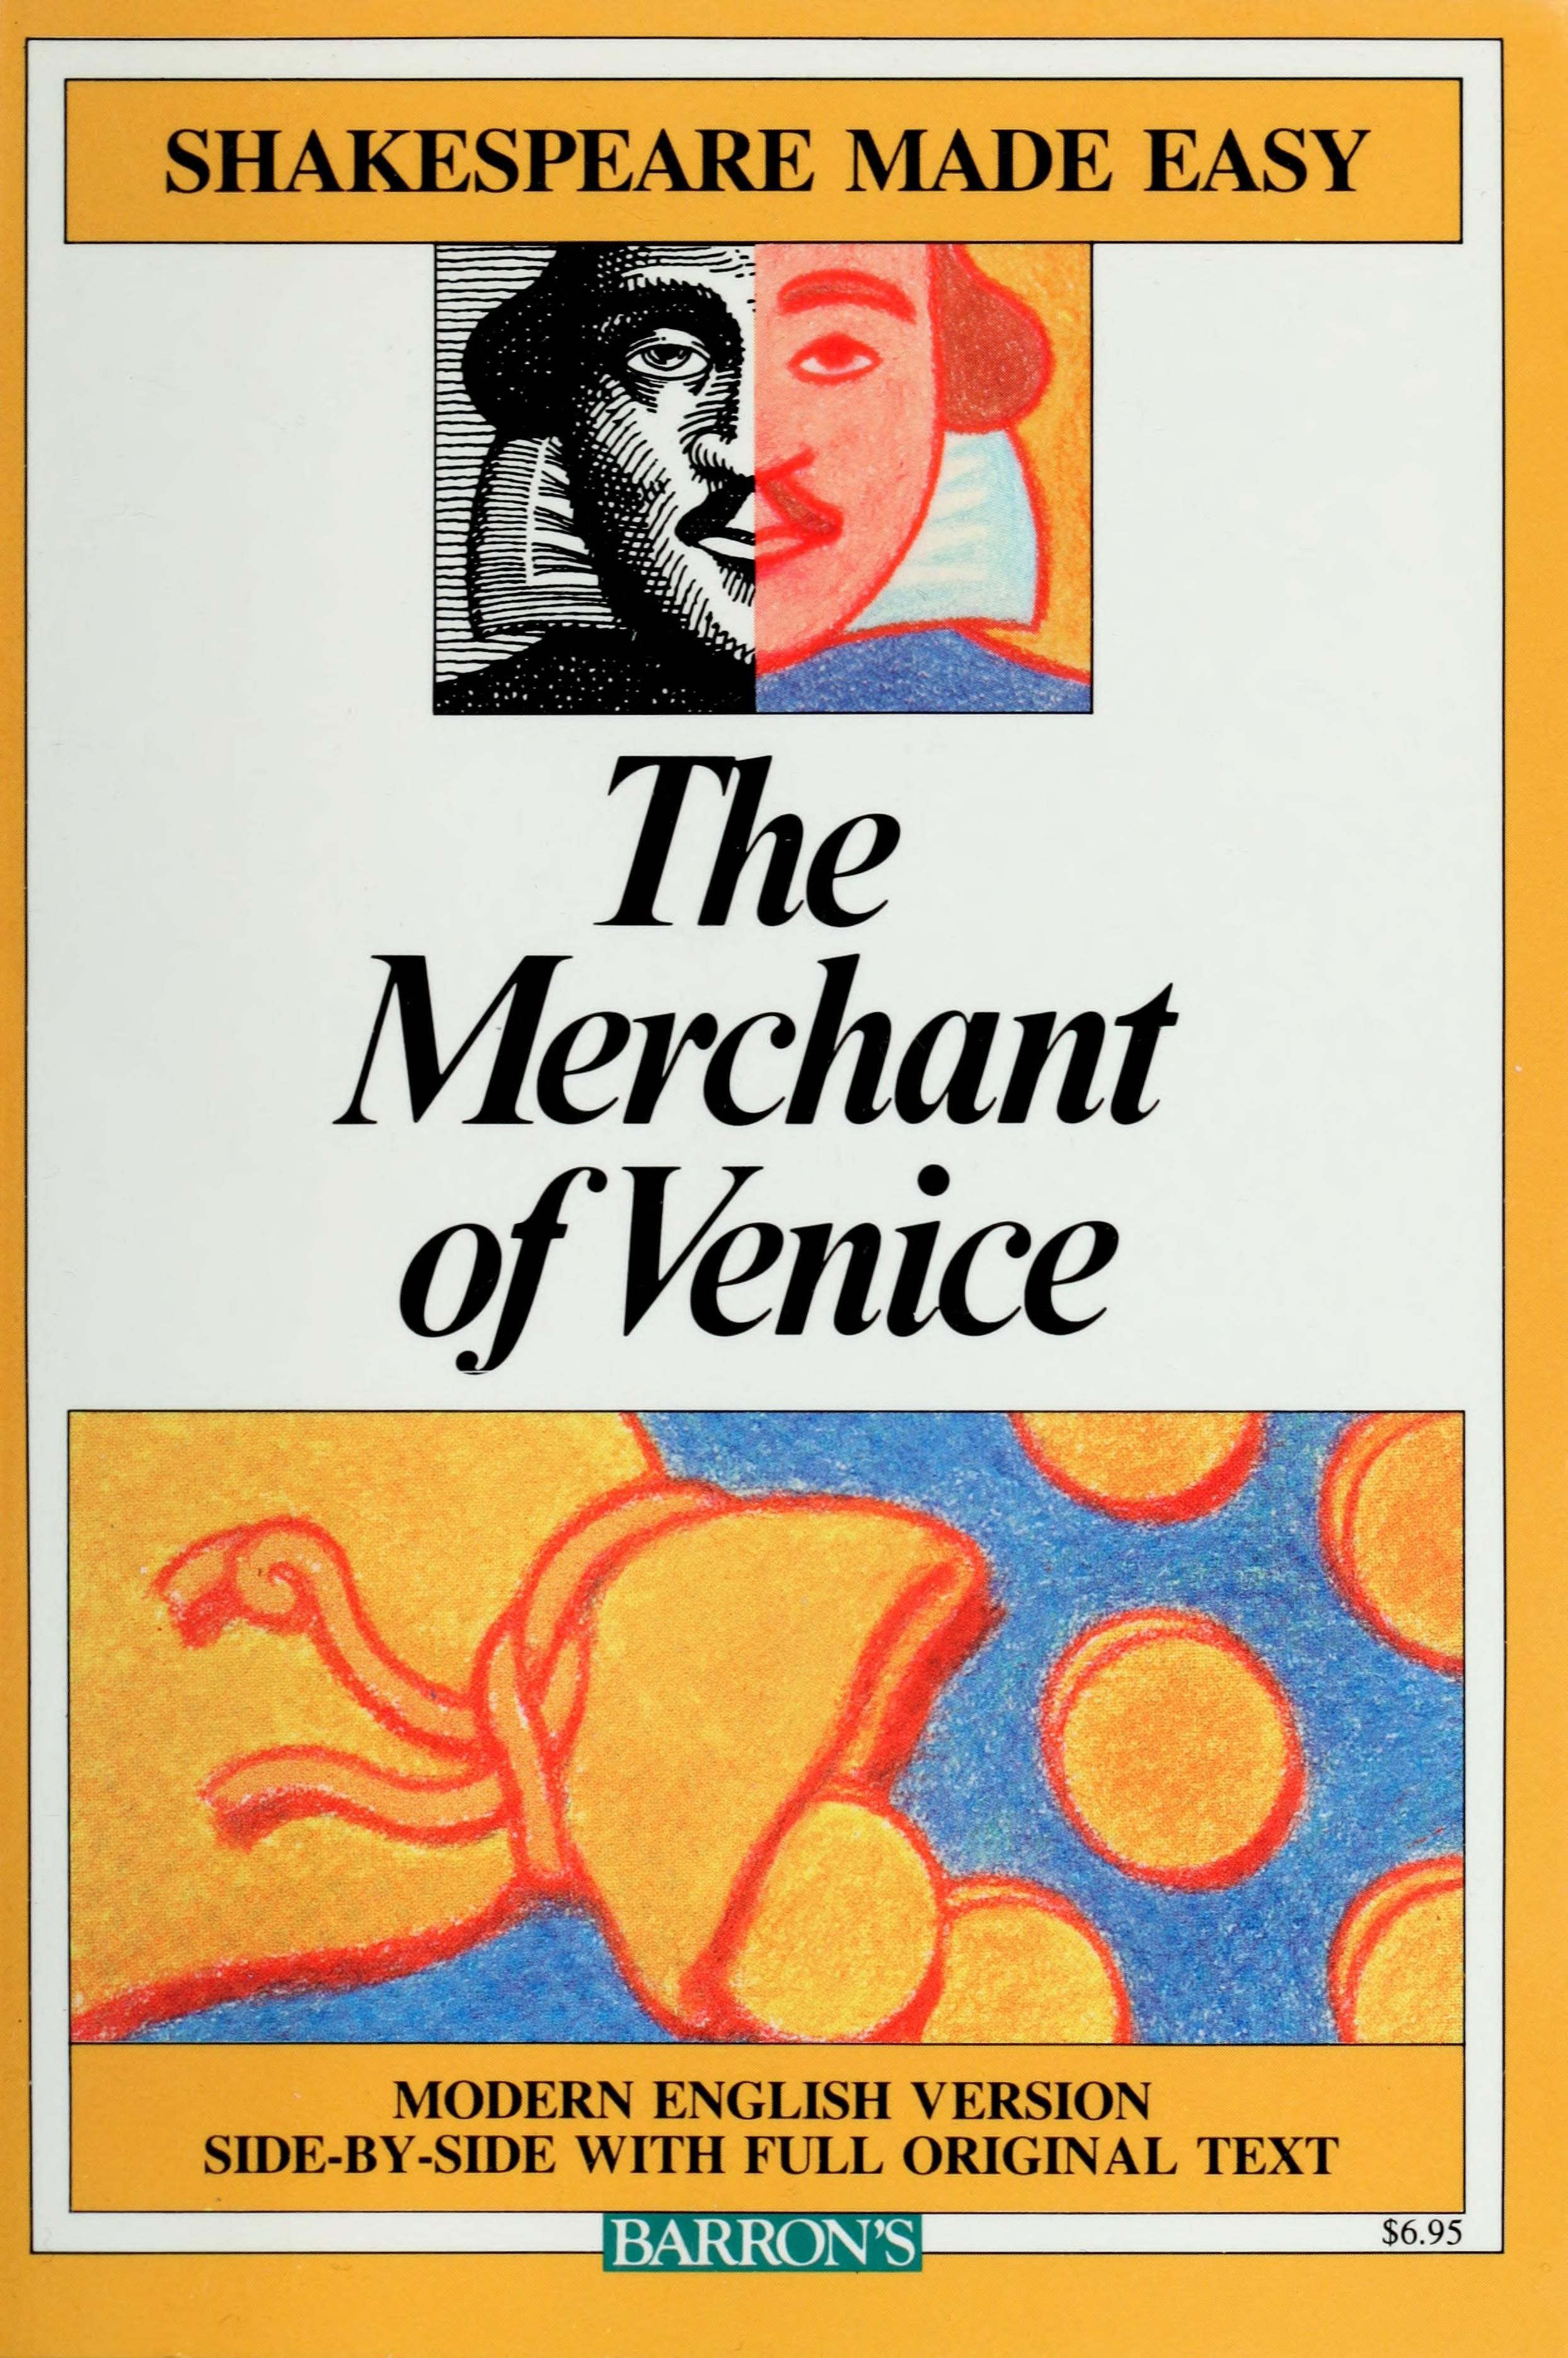 The Merchant Of Venice Modern Version Side By Side With Full Original Text Shakespeare William 1564 1616 Free Download Borrow And Streaming Internet In 2020 The Merchant Of Venice Shakespeare Plays Text